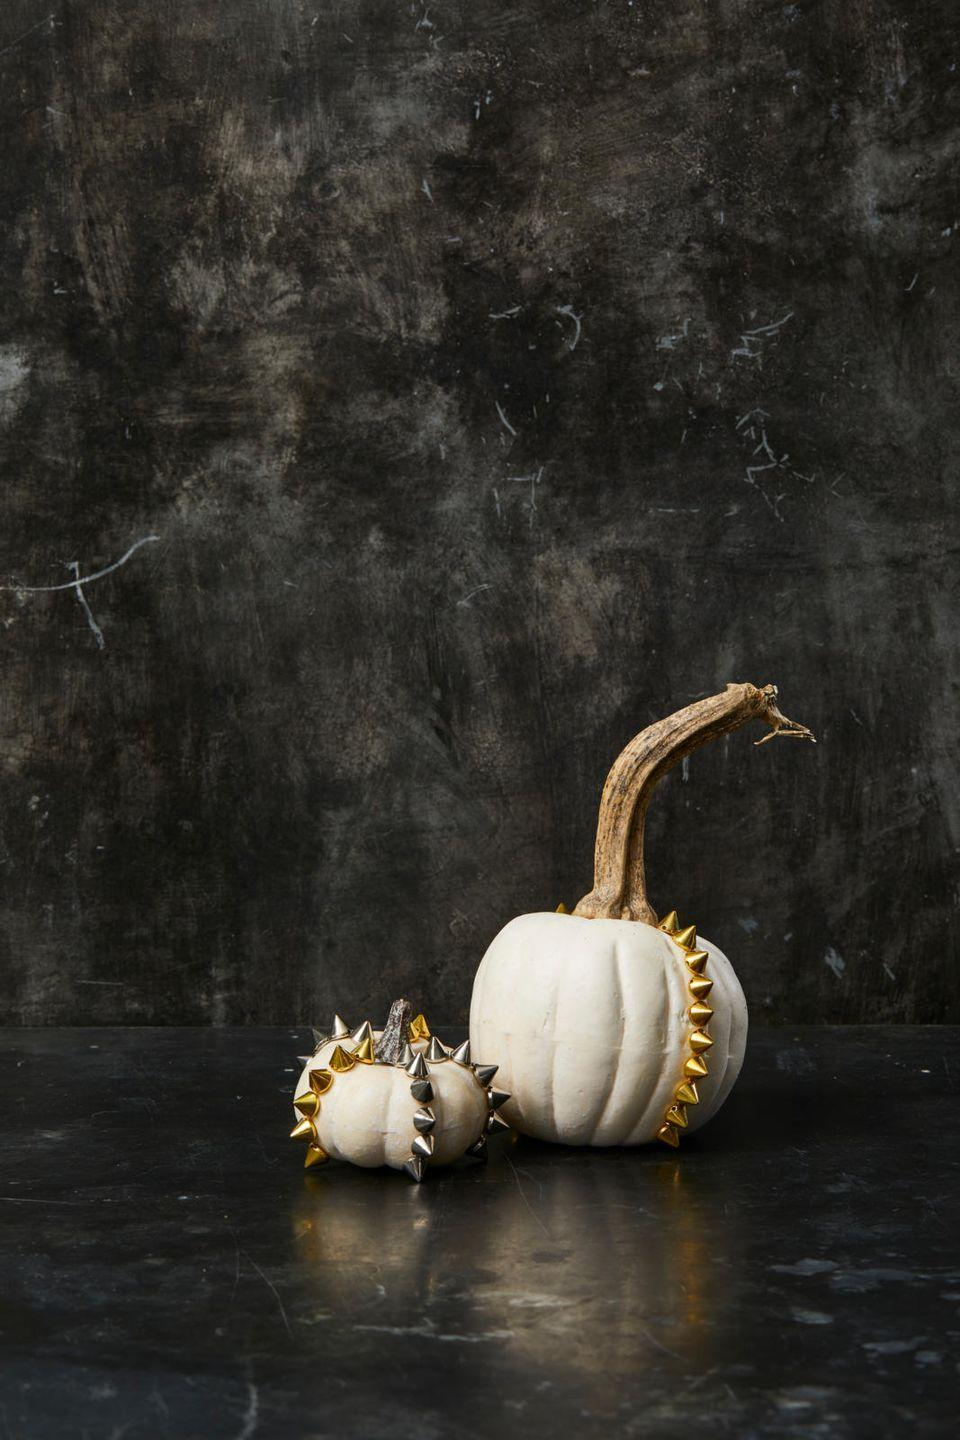 "<p>Mix up your holiday decorations with a little edge! Just paint each pumpkin one solid color and hot glue flat-bottomed studs in the pattern of your choice. </p><p><a class=""link rapid-noclick-resp"" href=""https://www.amazon.com/100pcs-Square-Leathercraft-Pyramid-Nailheads/dp/B07FLFCNZS/?tag=syn-yahoo-20&ascsubtag=%5Bartid%7C10055.g.1714%5Bsrc%7Cyahoo-us"" rel=""nofollow noopener"" target=""_blank"" data-ylk=""slk:SHOP FLAT-BOTTOMED STUDS"">SHOP FLAT-BOTTOMED STUDS </a></p><p><strong>RELATED: </strong><a href=""https://www.goodhousekeeping.com/holidays/halloween-ideas/g1566/easy-halloween-craft-ideas/"" rel=""nofollow noopener"" target=""_blank"" data-ylk=""slk:60 Easy Halloween Crafts for Adults Who Love All Things Spooky and Spidery"" class=""link rapid-noclick-resp"">60 Easy Halloween Crafts for Adults Who Love All Things Spooky and Spidery</a></p>"